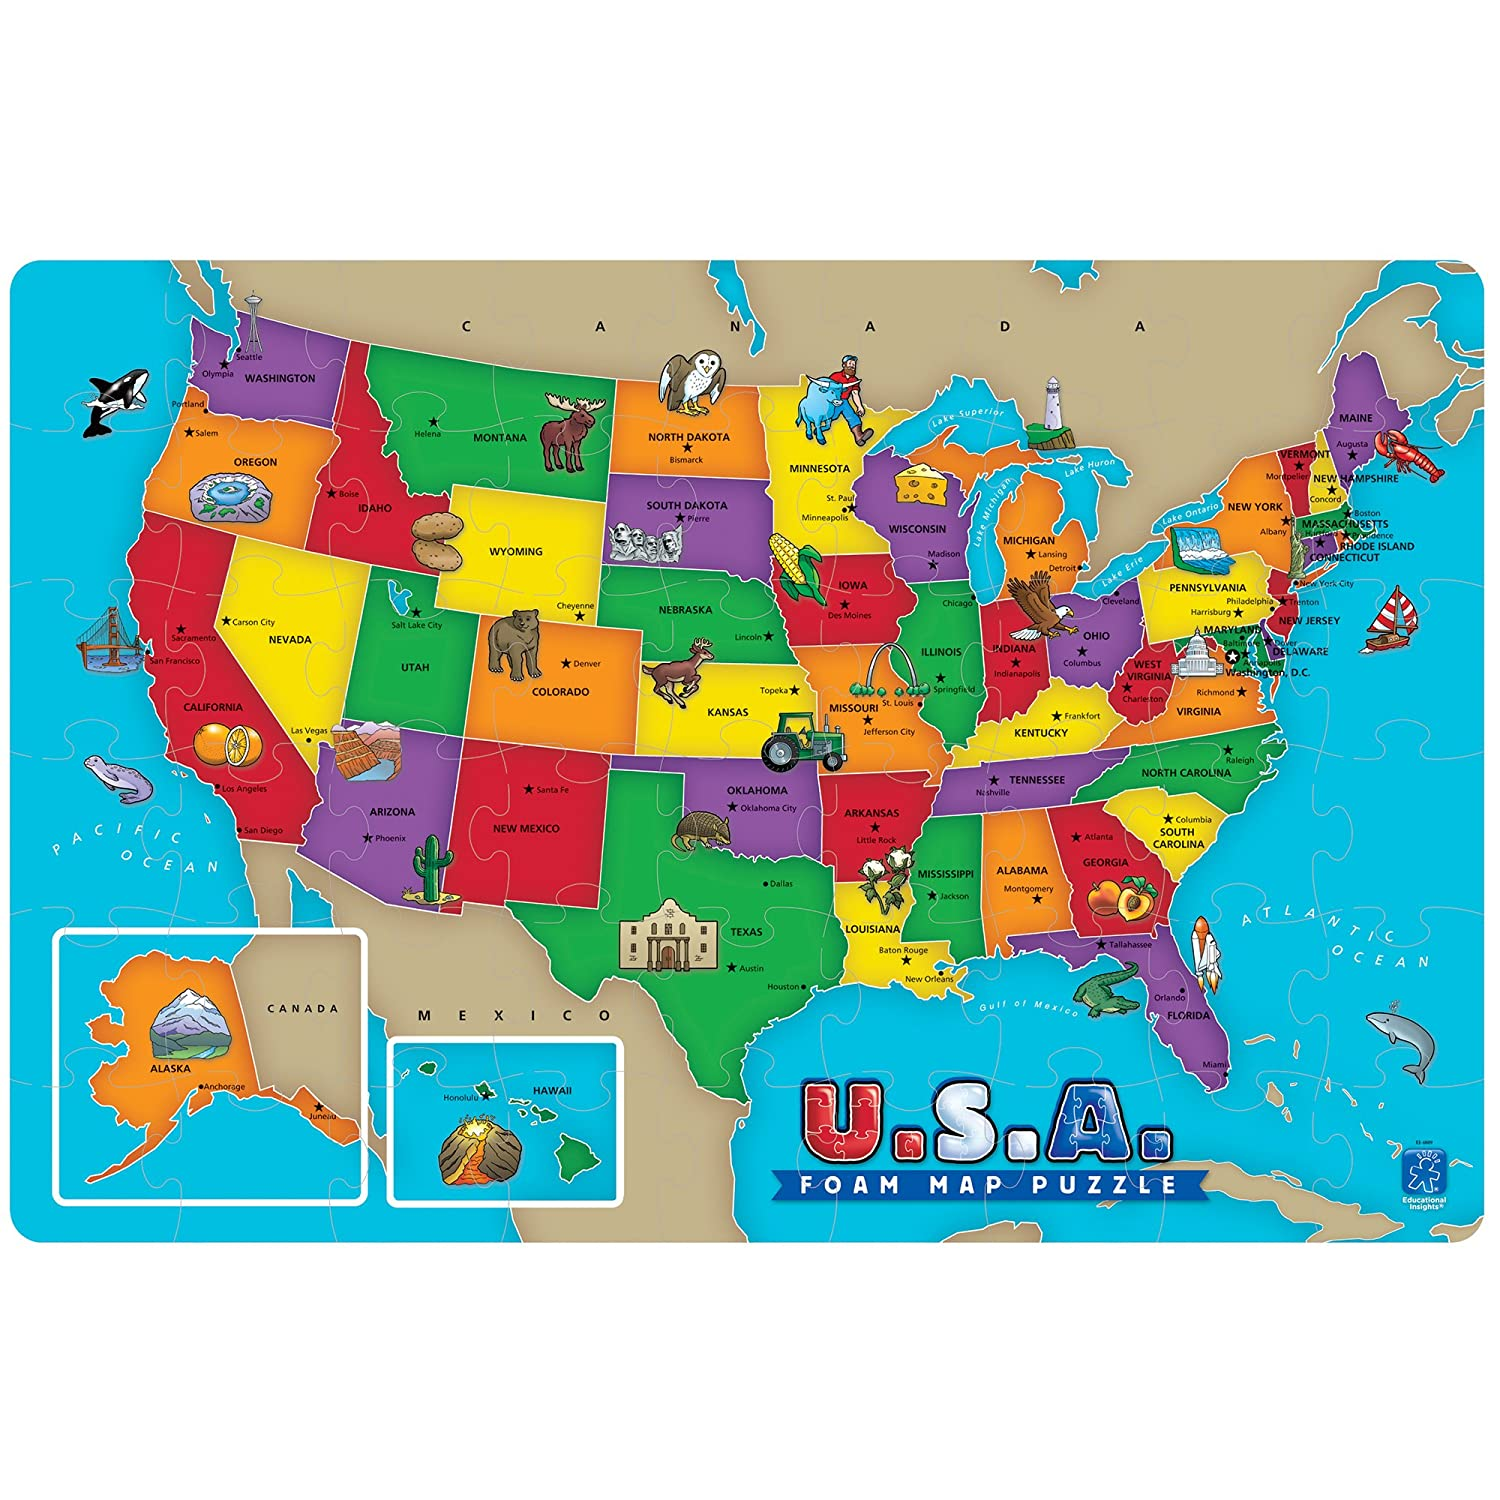 Amazoncom Piece USA Foam Map Puzzle Toys Games - Maps of the us